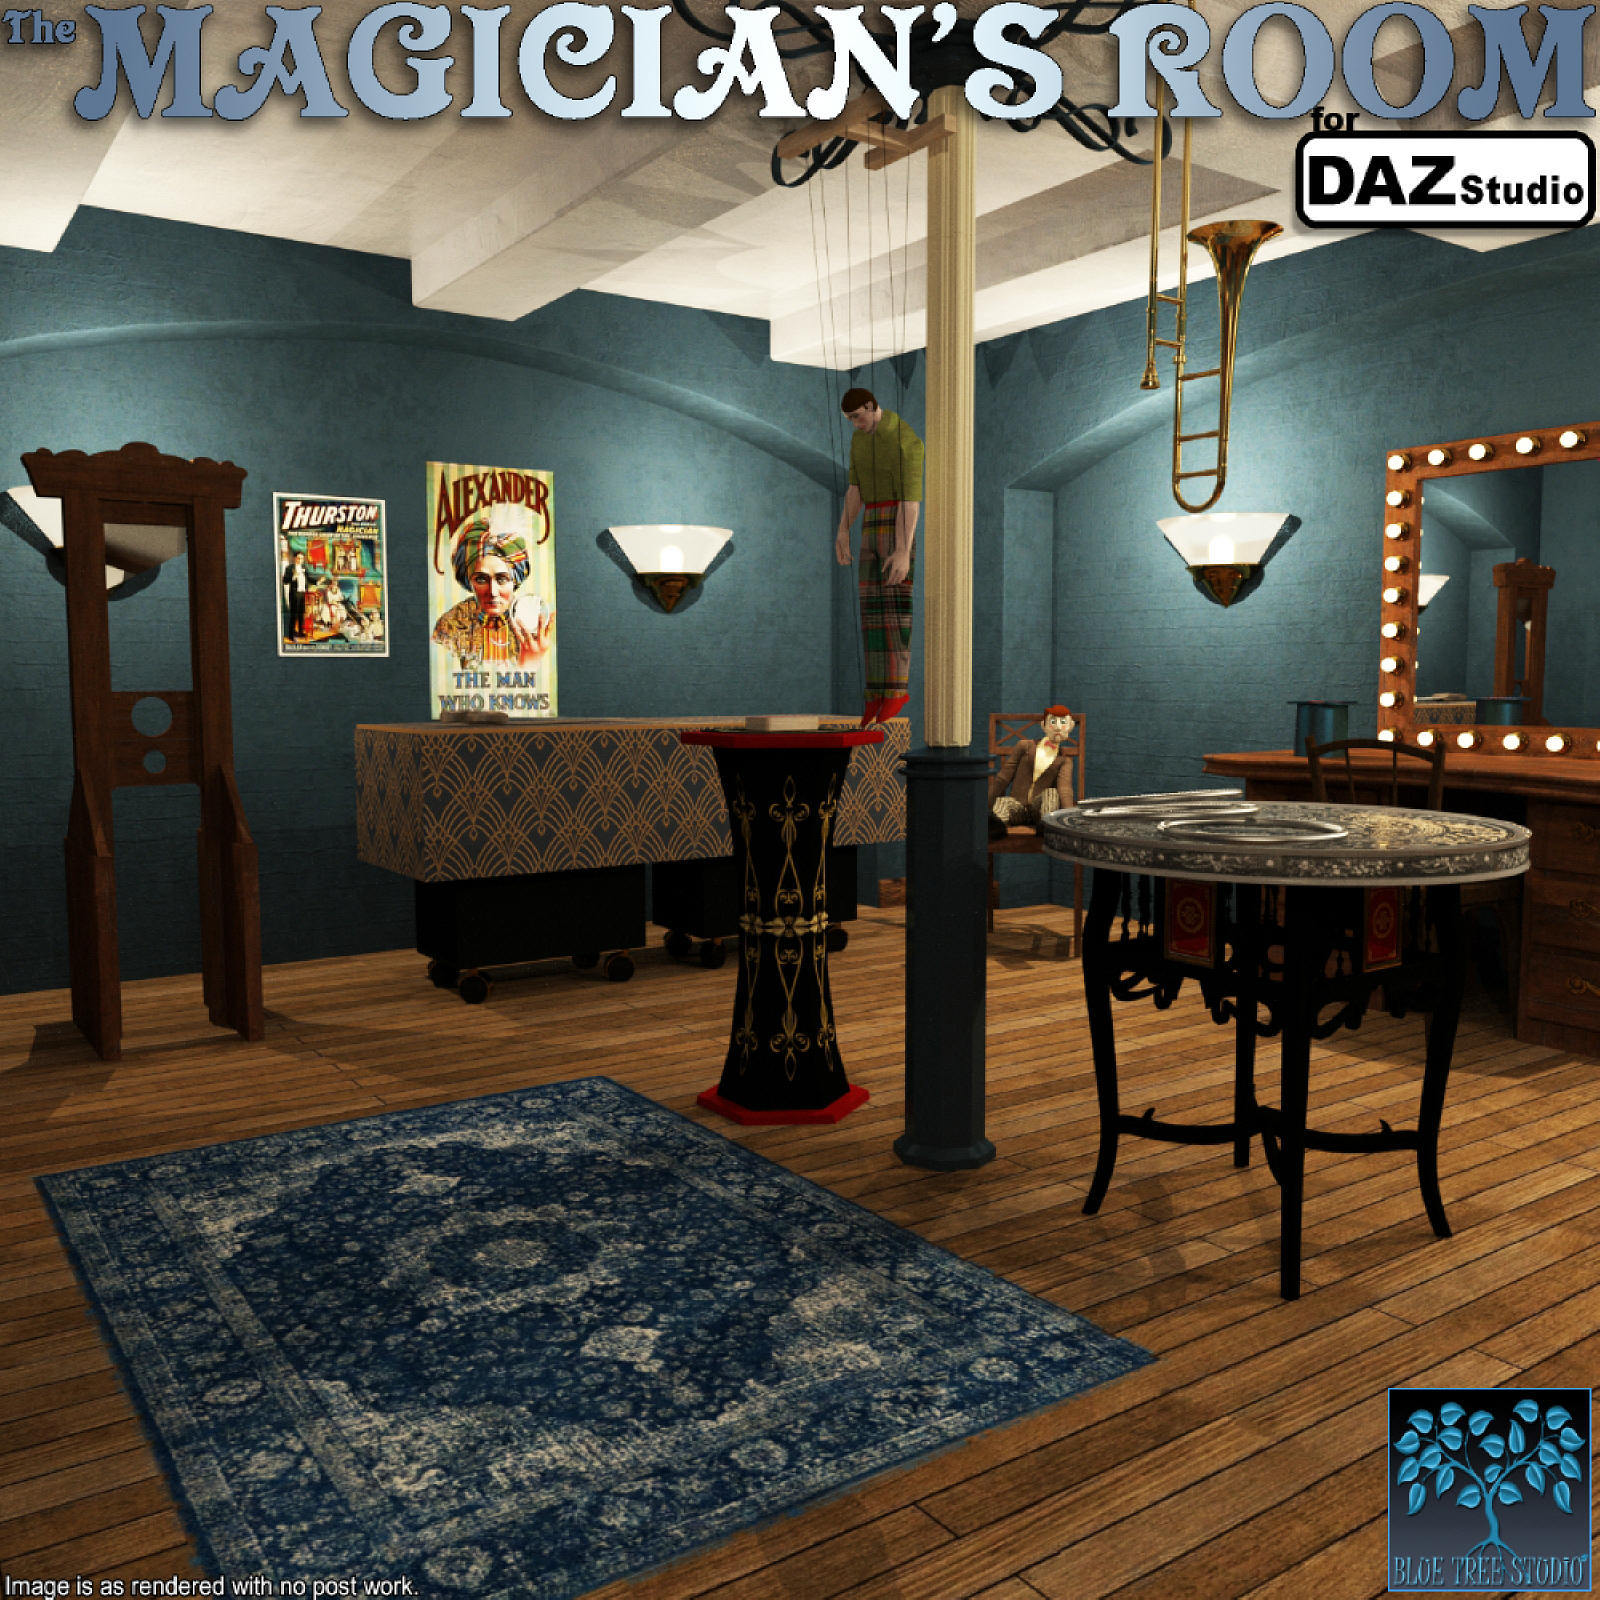 The Magician's Room for DAZ Studio